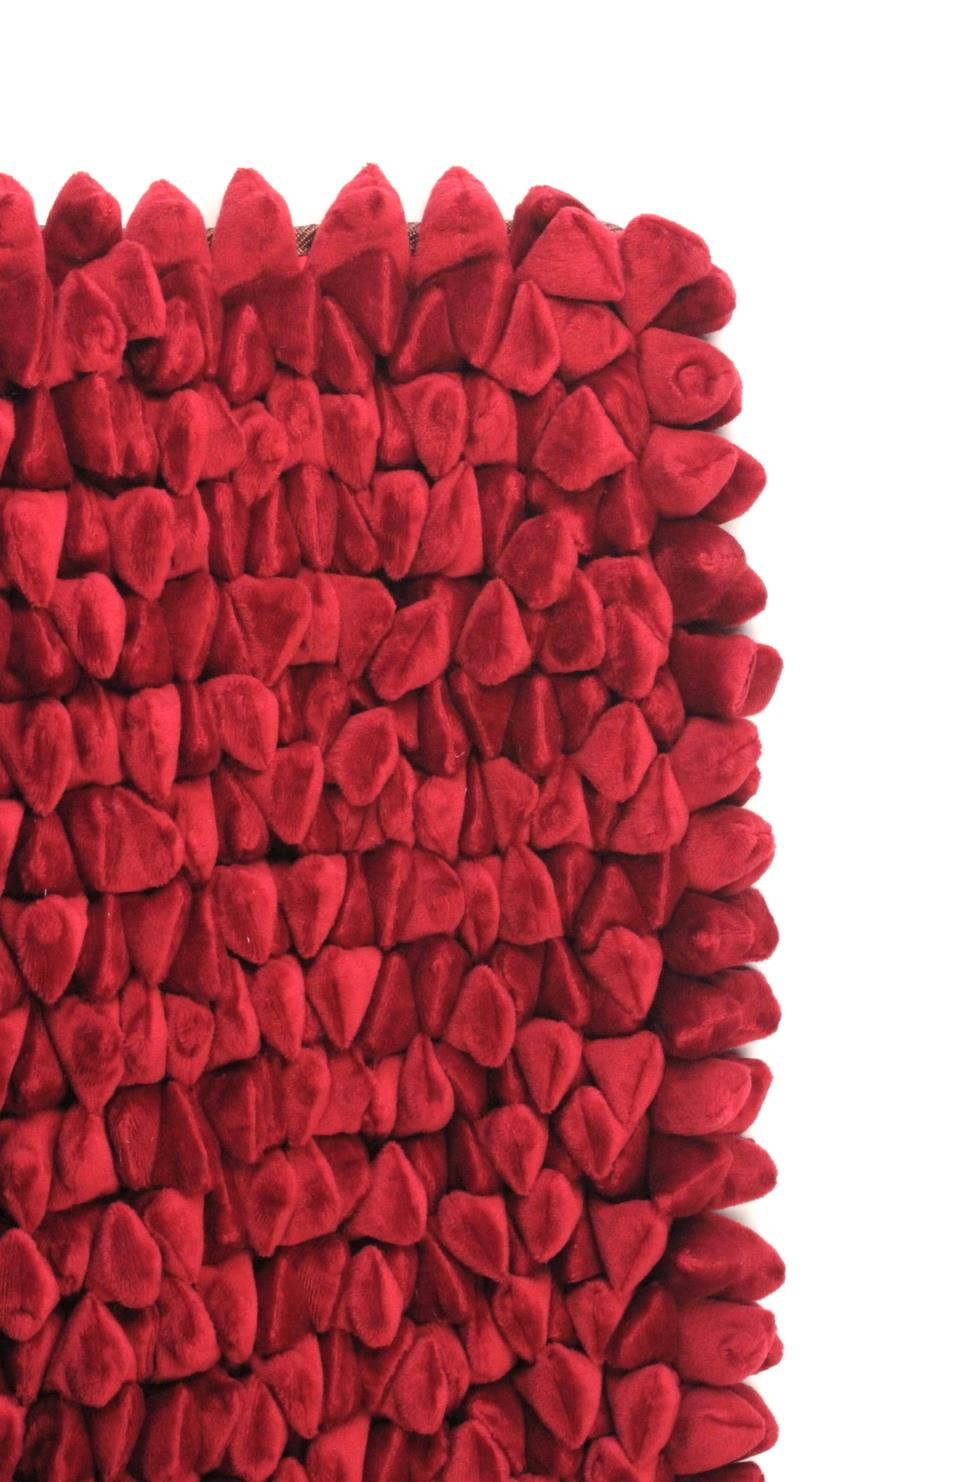 Pebble Chamois Rug: 5'x7' Red